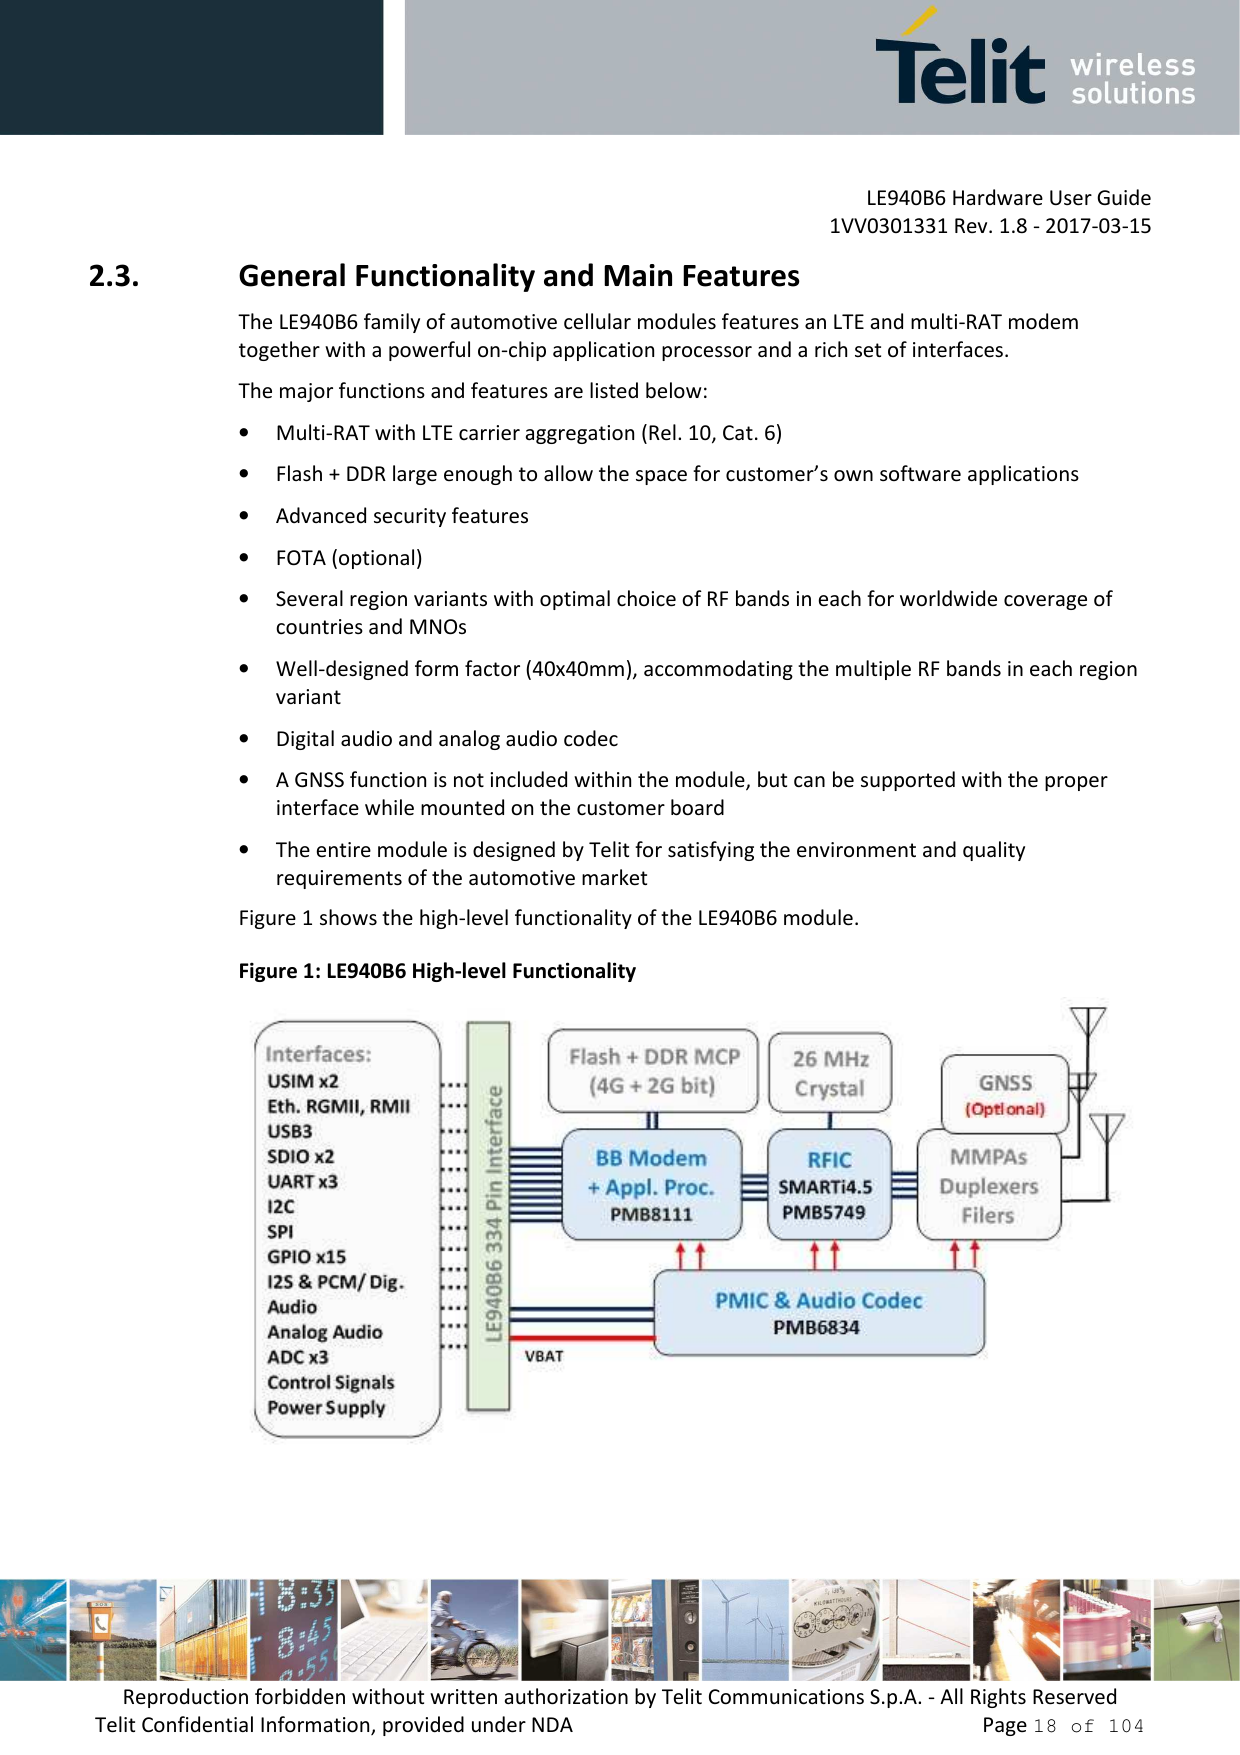 LE940B6 Hardware User Guide     1VV0301331 Rev. 1.8 - 2017-03-15 Reproduction forbidden without written authorization by Telit Communications S.p.A. - All Rights Reserved Telit Confidential Information, provided under NDA                 Page 18 of 104 2.3. General Functionality and Main Features The LE940B6 family of automotive cellular modules features an LTE and multi-RAT modem together with a powerful on-chip application processor and a rich set of interfaces. The major functions and features are listed below: • Multi-RAT with LTE carrier aggregation (Rel. 10, Cat. 6) • Flash + DDR large enough to allow the space for customer's own software applications • Advanced security features  • FOTA (optional) • Several region variants with optimal choice of RF bands in each for worldwide coverage of countries and MNOs • Well-designed form factor (40x40mm), accommodating the multiple RF bands in each region variant • Digital audio and analog audio codec • A GNSS function is not included within the module, but can be supported with the proper interface while mounted on the customer board • The entire module is designed by Telit for satisfying the environment and quality requirements of the automotive market Figure 1 shows the high-level functionality of the LE940B6 module. Figure 1: LE940B6 High-level Functionality